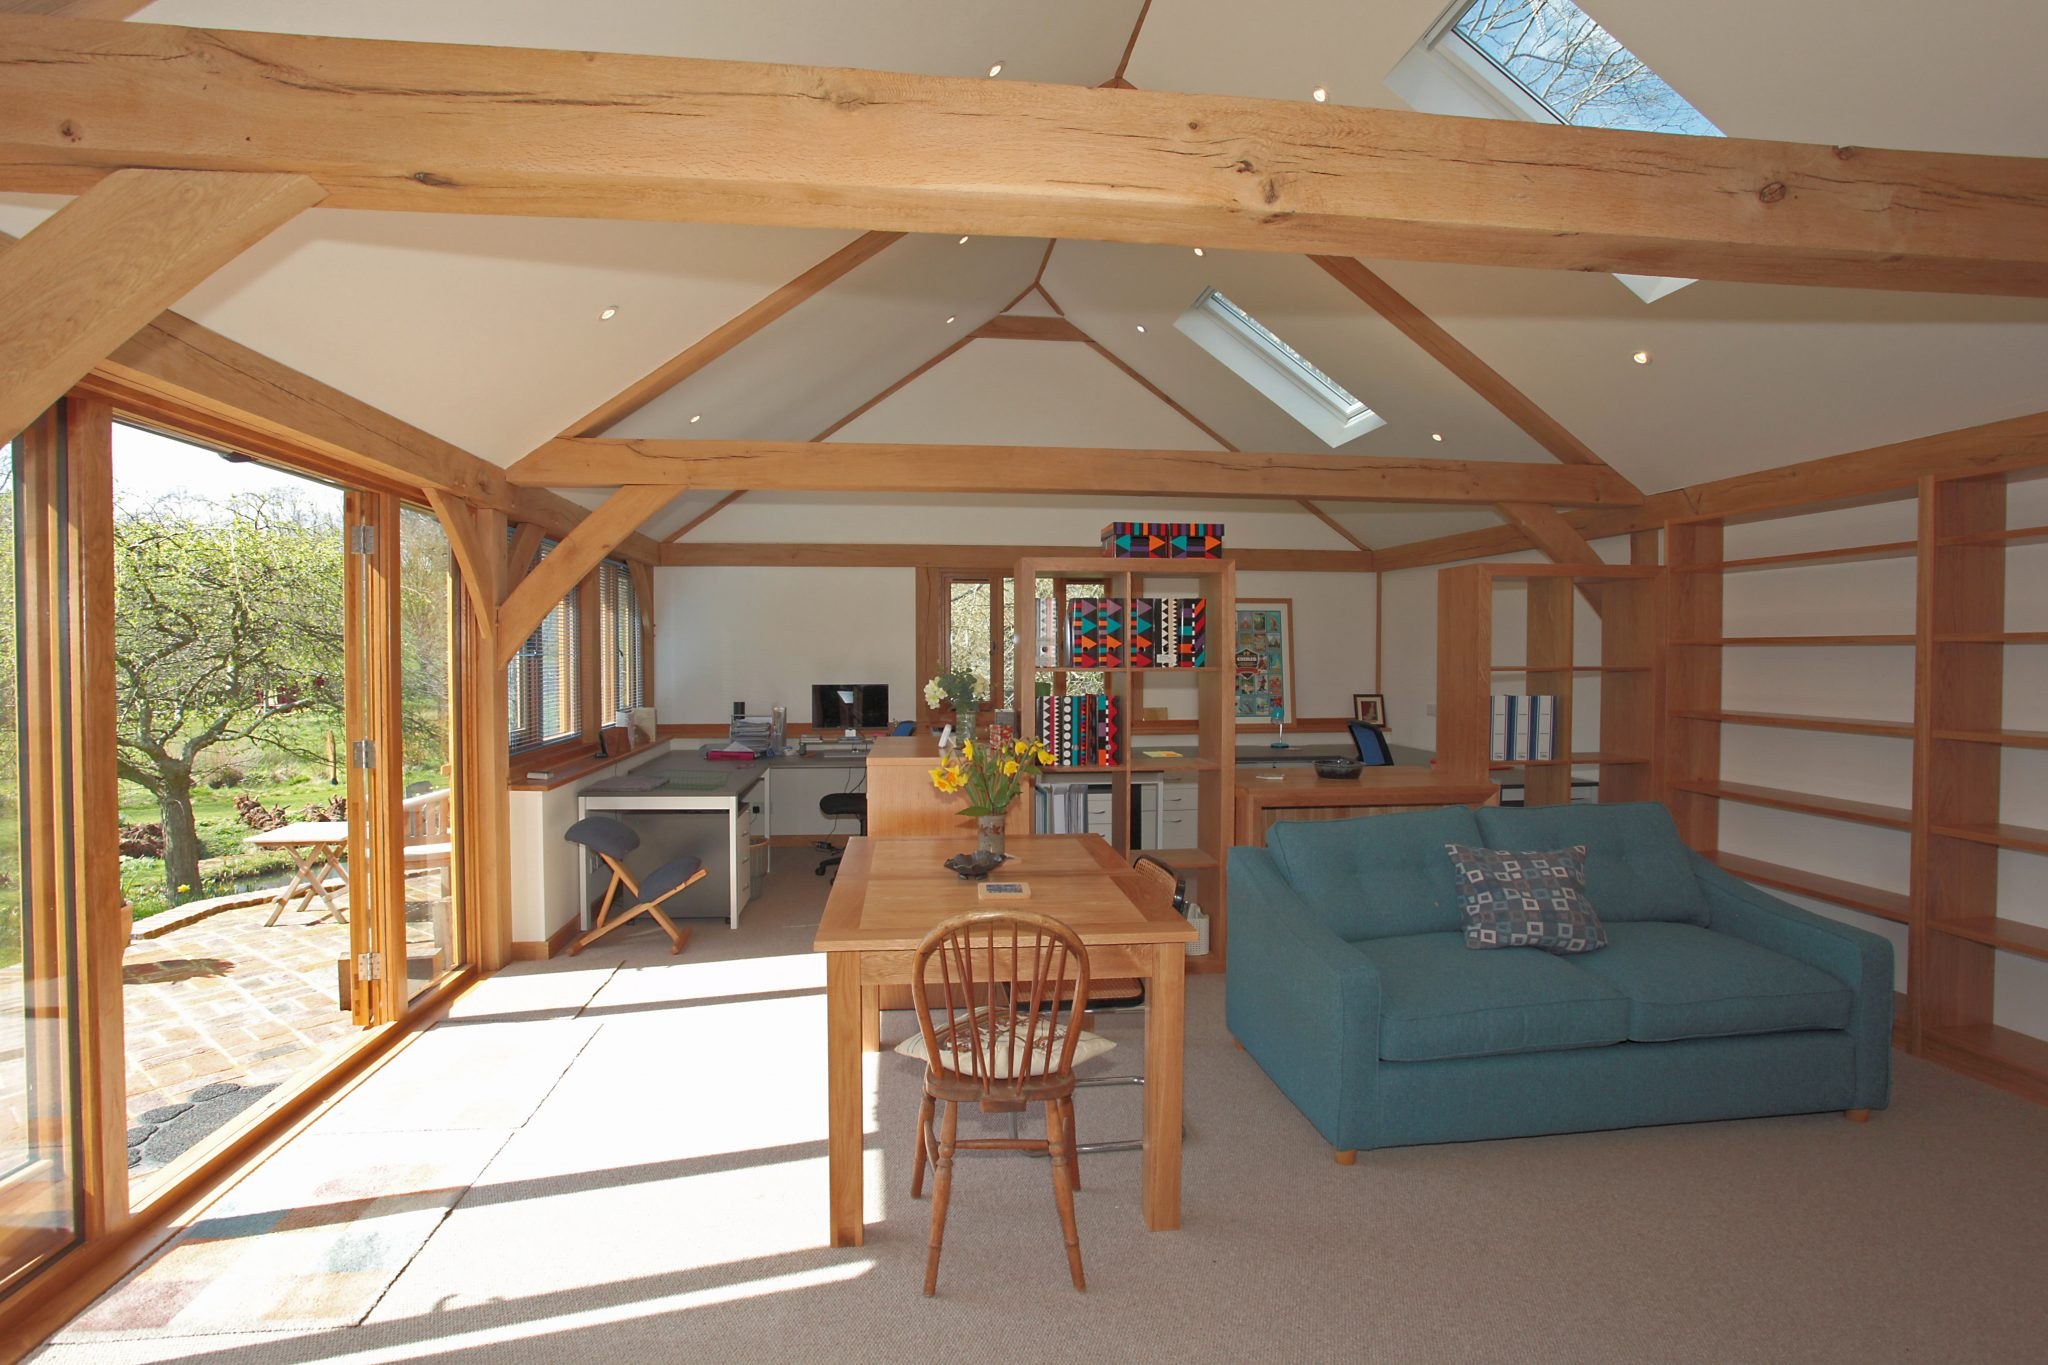 garden room internal